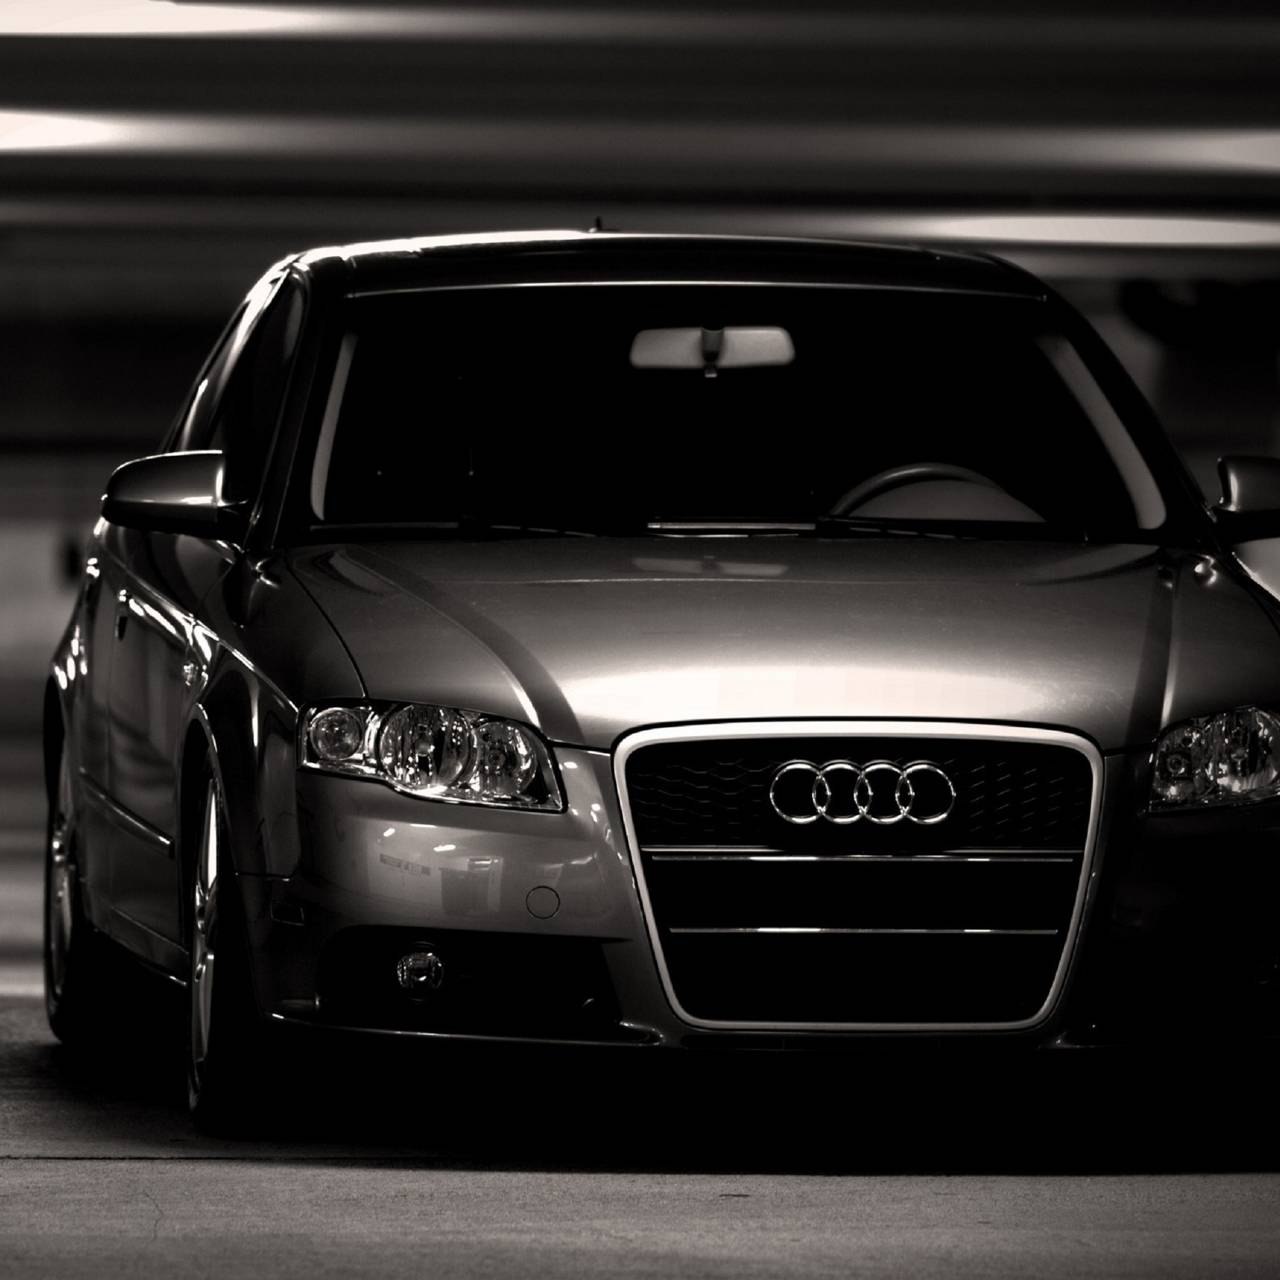 Audi A4 B7 Wallpaper By BANG_978